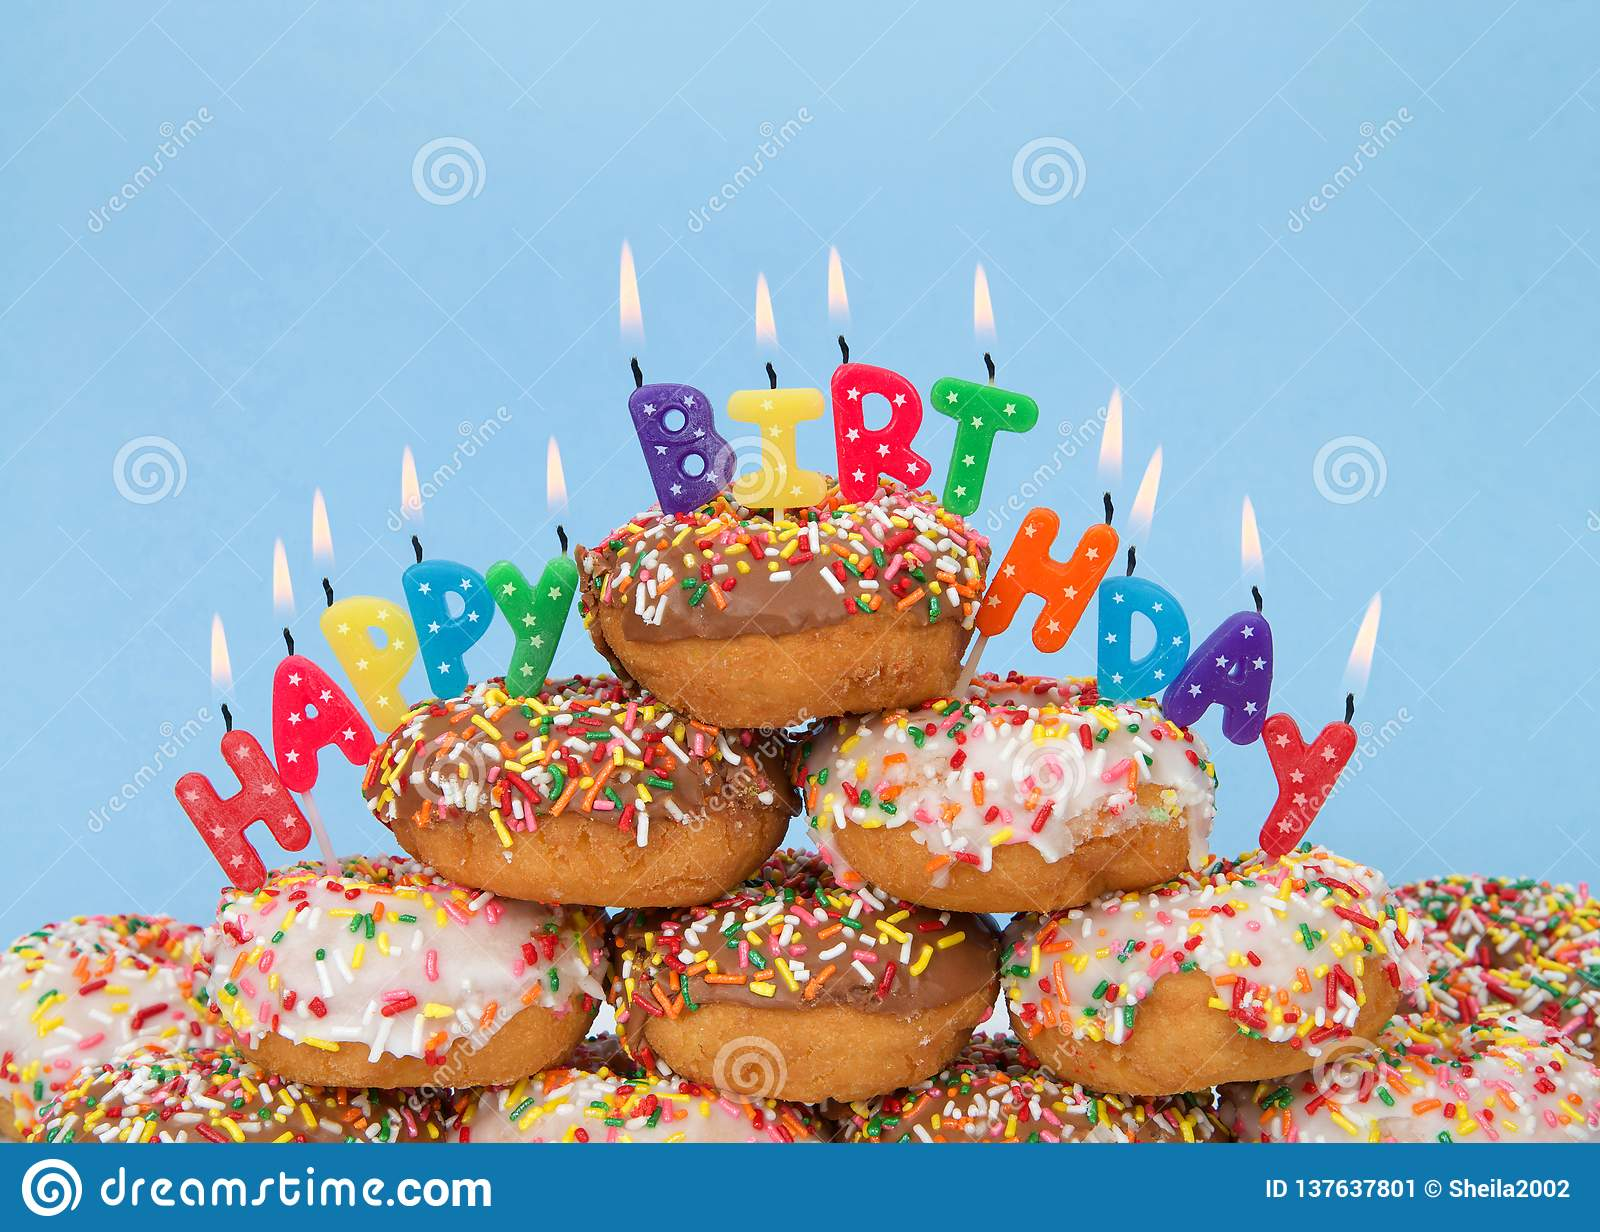 donuts stacked with happy birthday candles blue